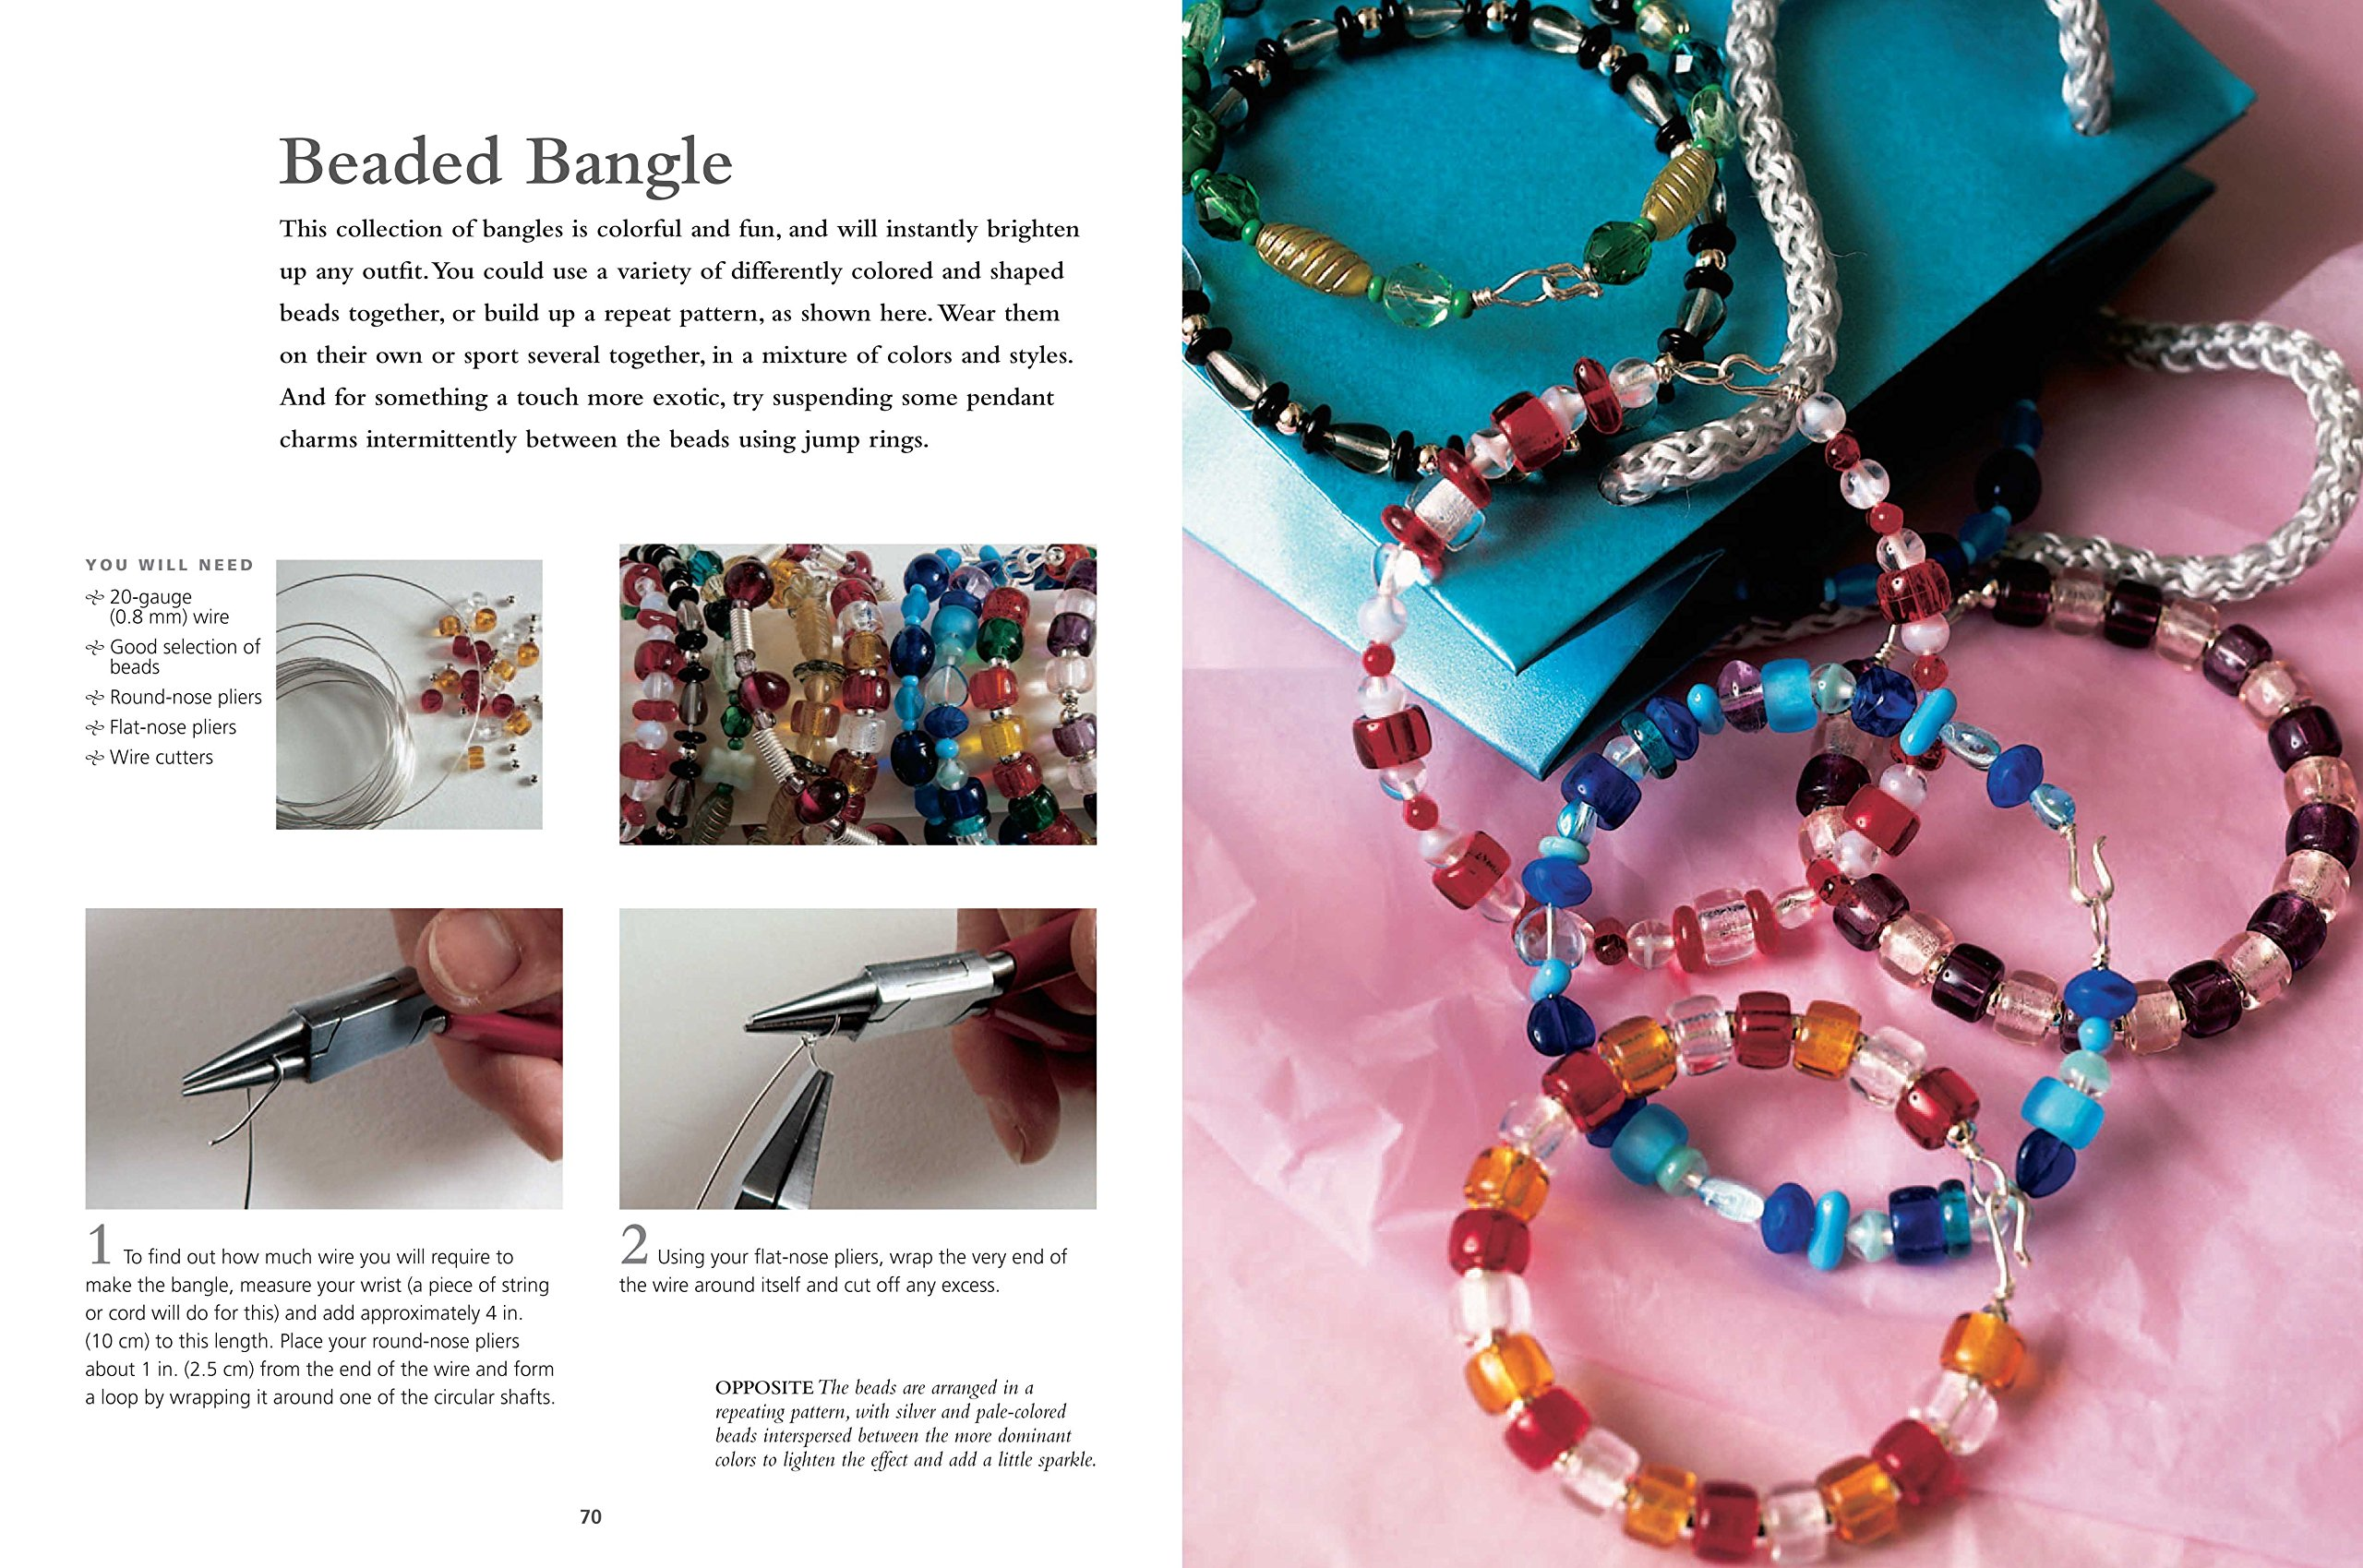 The Complete Guide to Wire & Beaded Jewelry: Over 50 beautiful projects and  variations using wire and beads: Linda Jones: 9781906525705: Amazon.com:  Books